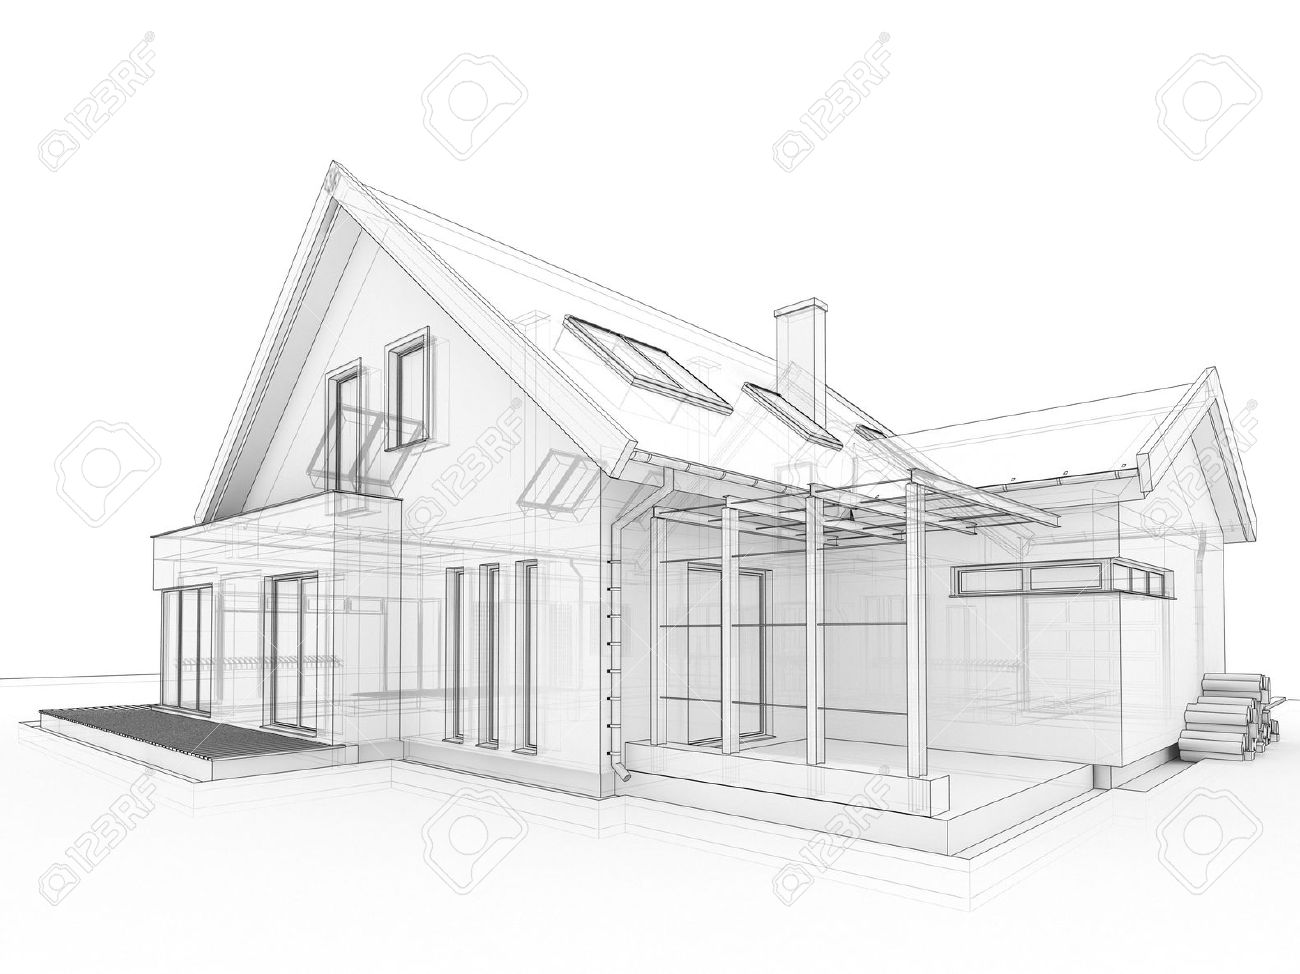 computer generated transparent house design visualization in computer generated transparent house design visualization in drawing style stock photo 16153168